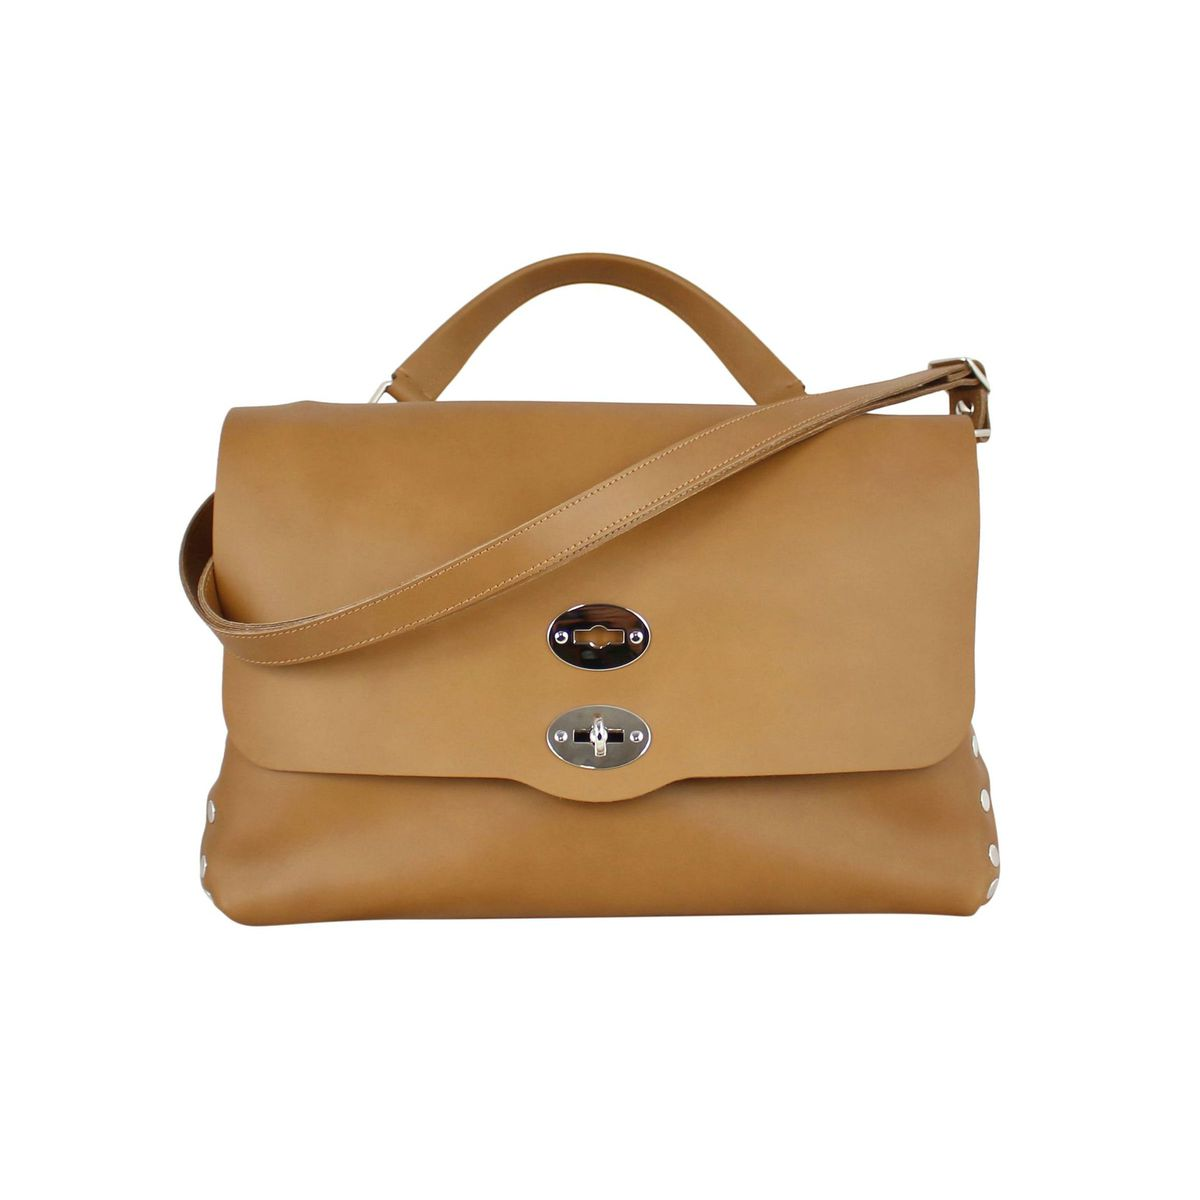 Postina M in Original Silk leather Cuba Zanellato